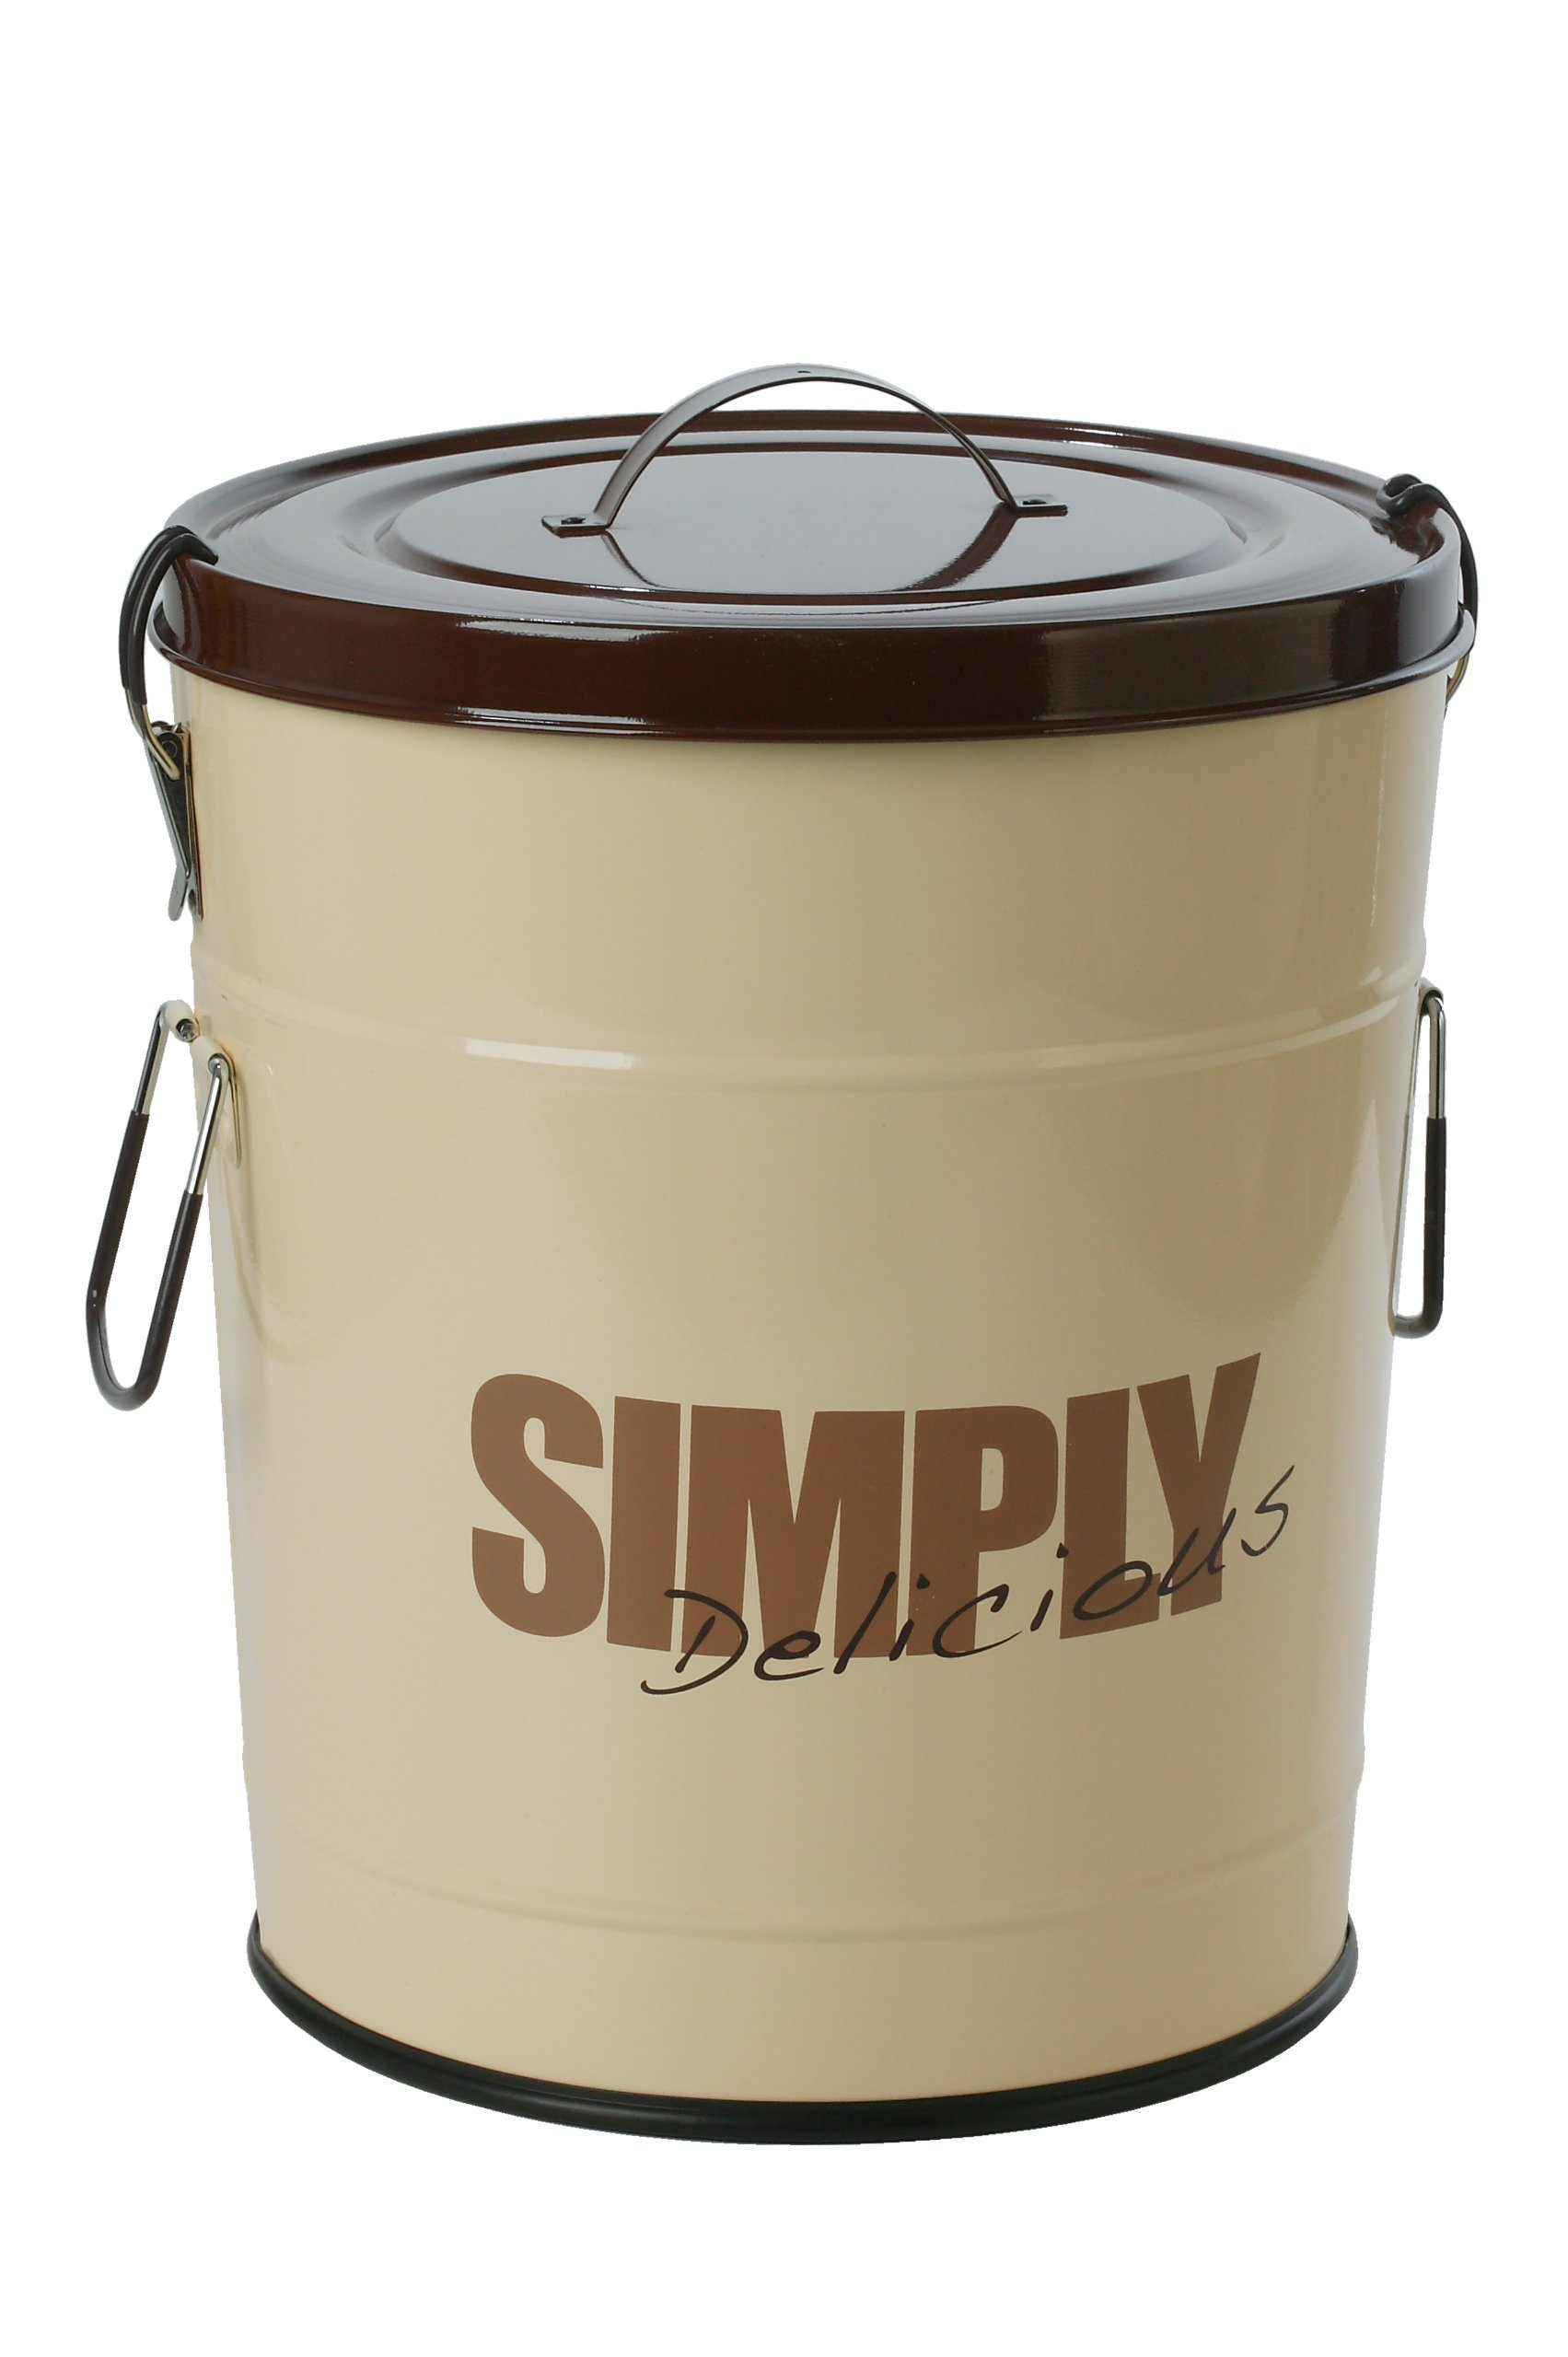 One for Pets Simply Delicious Dog Food Container, 33-Pound, Brown by One for Pets